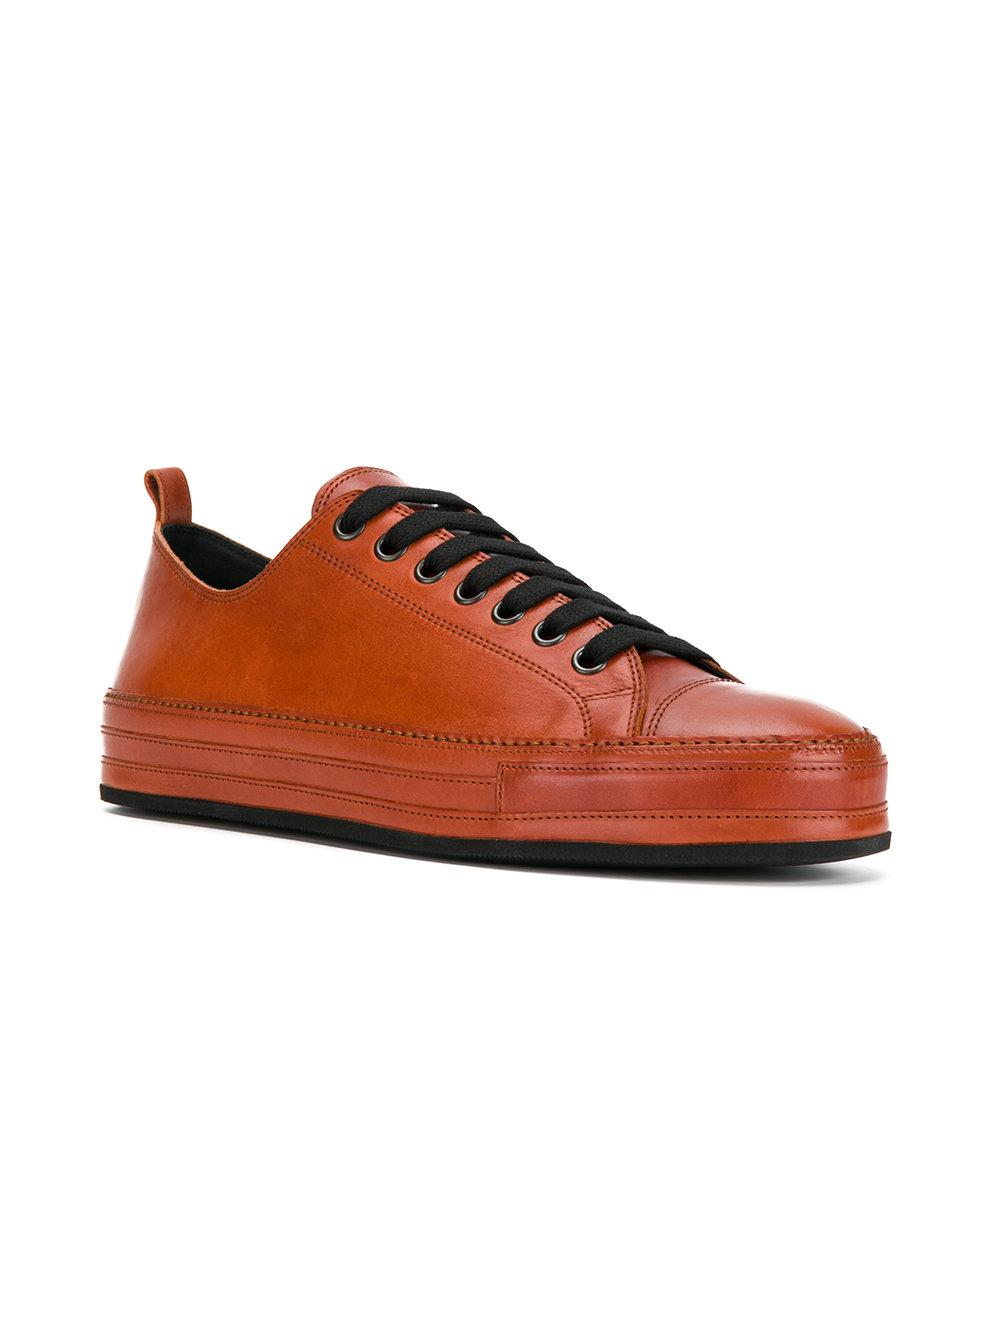 low top lace-up sneakers - Yellow & Orange Ann Demeulemeester